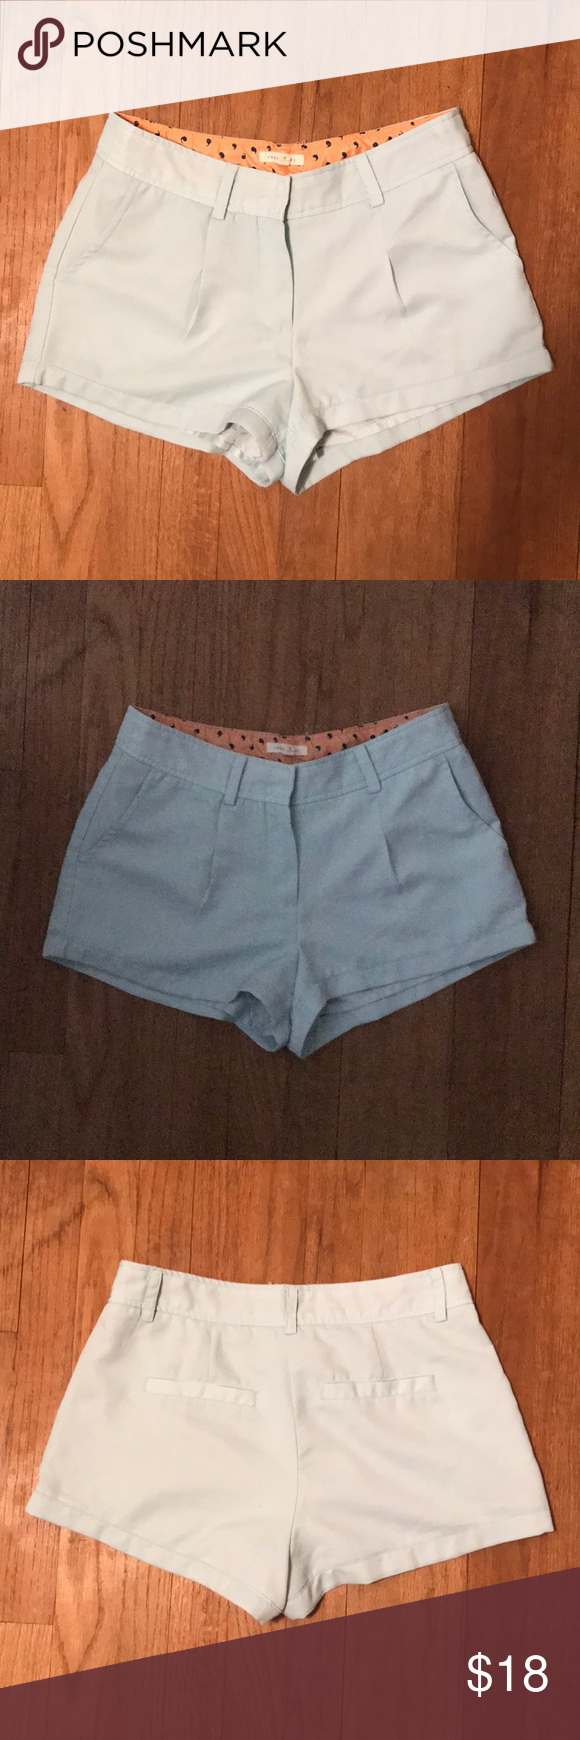 Under Skies light blue shorts size S lined These adorable light blue shorts have only been worn a handful of times. The color is a light sky blue which doesn't show so well in the pictures.  Features: belt loops, zip and secure, functional front and back pockets!! Under Skies Shorts #lightblueshorts